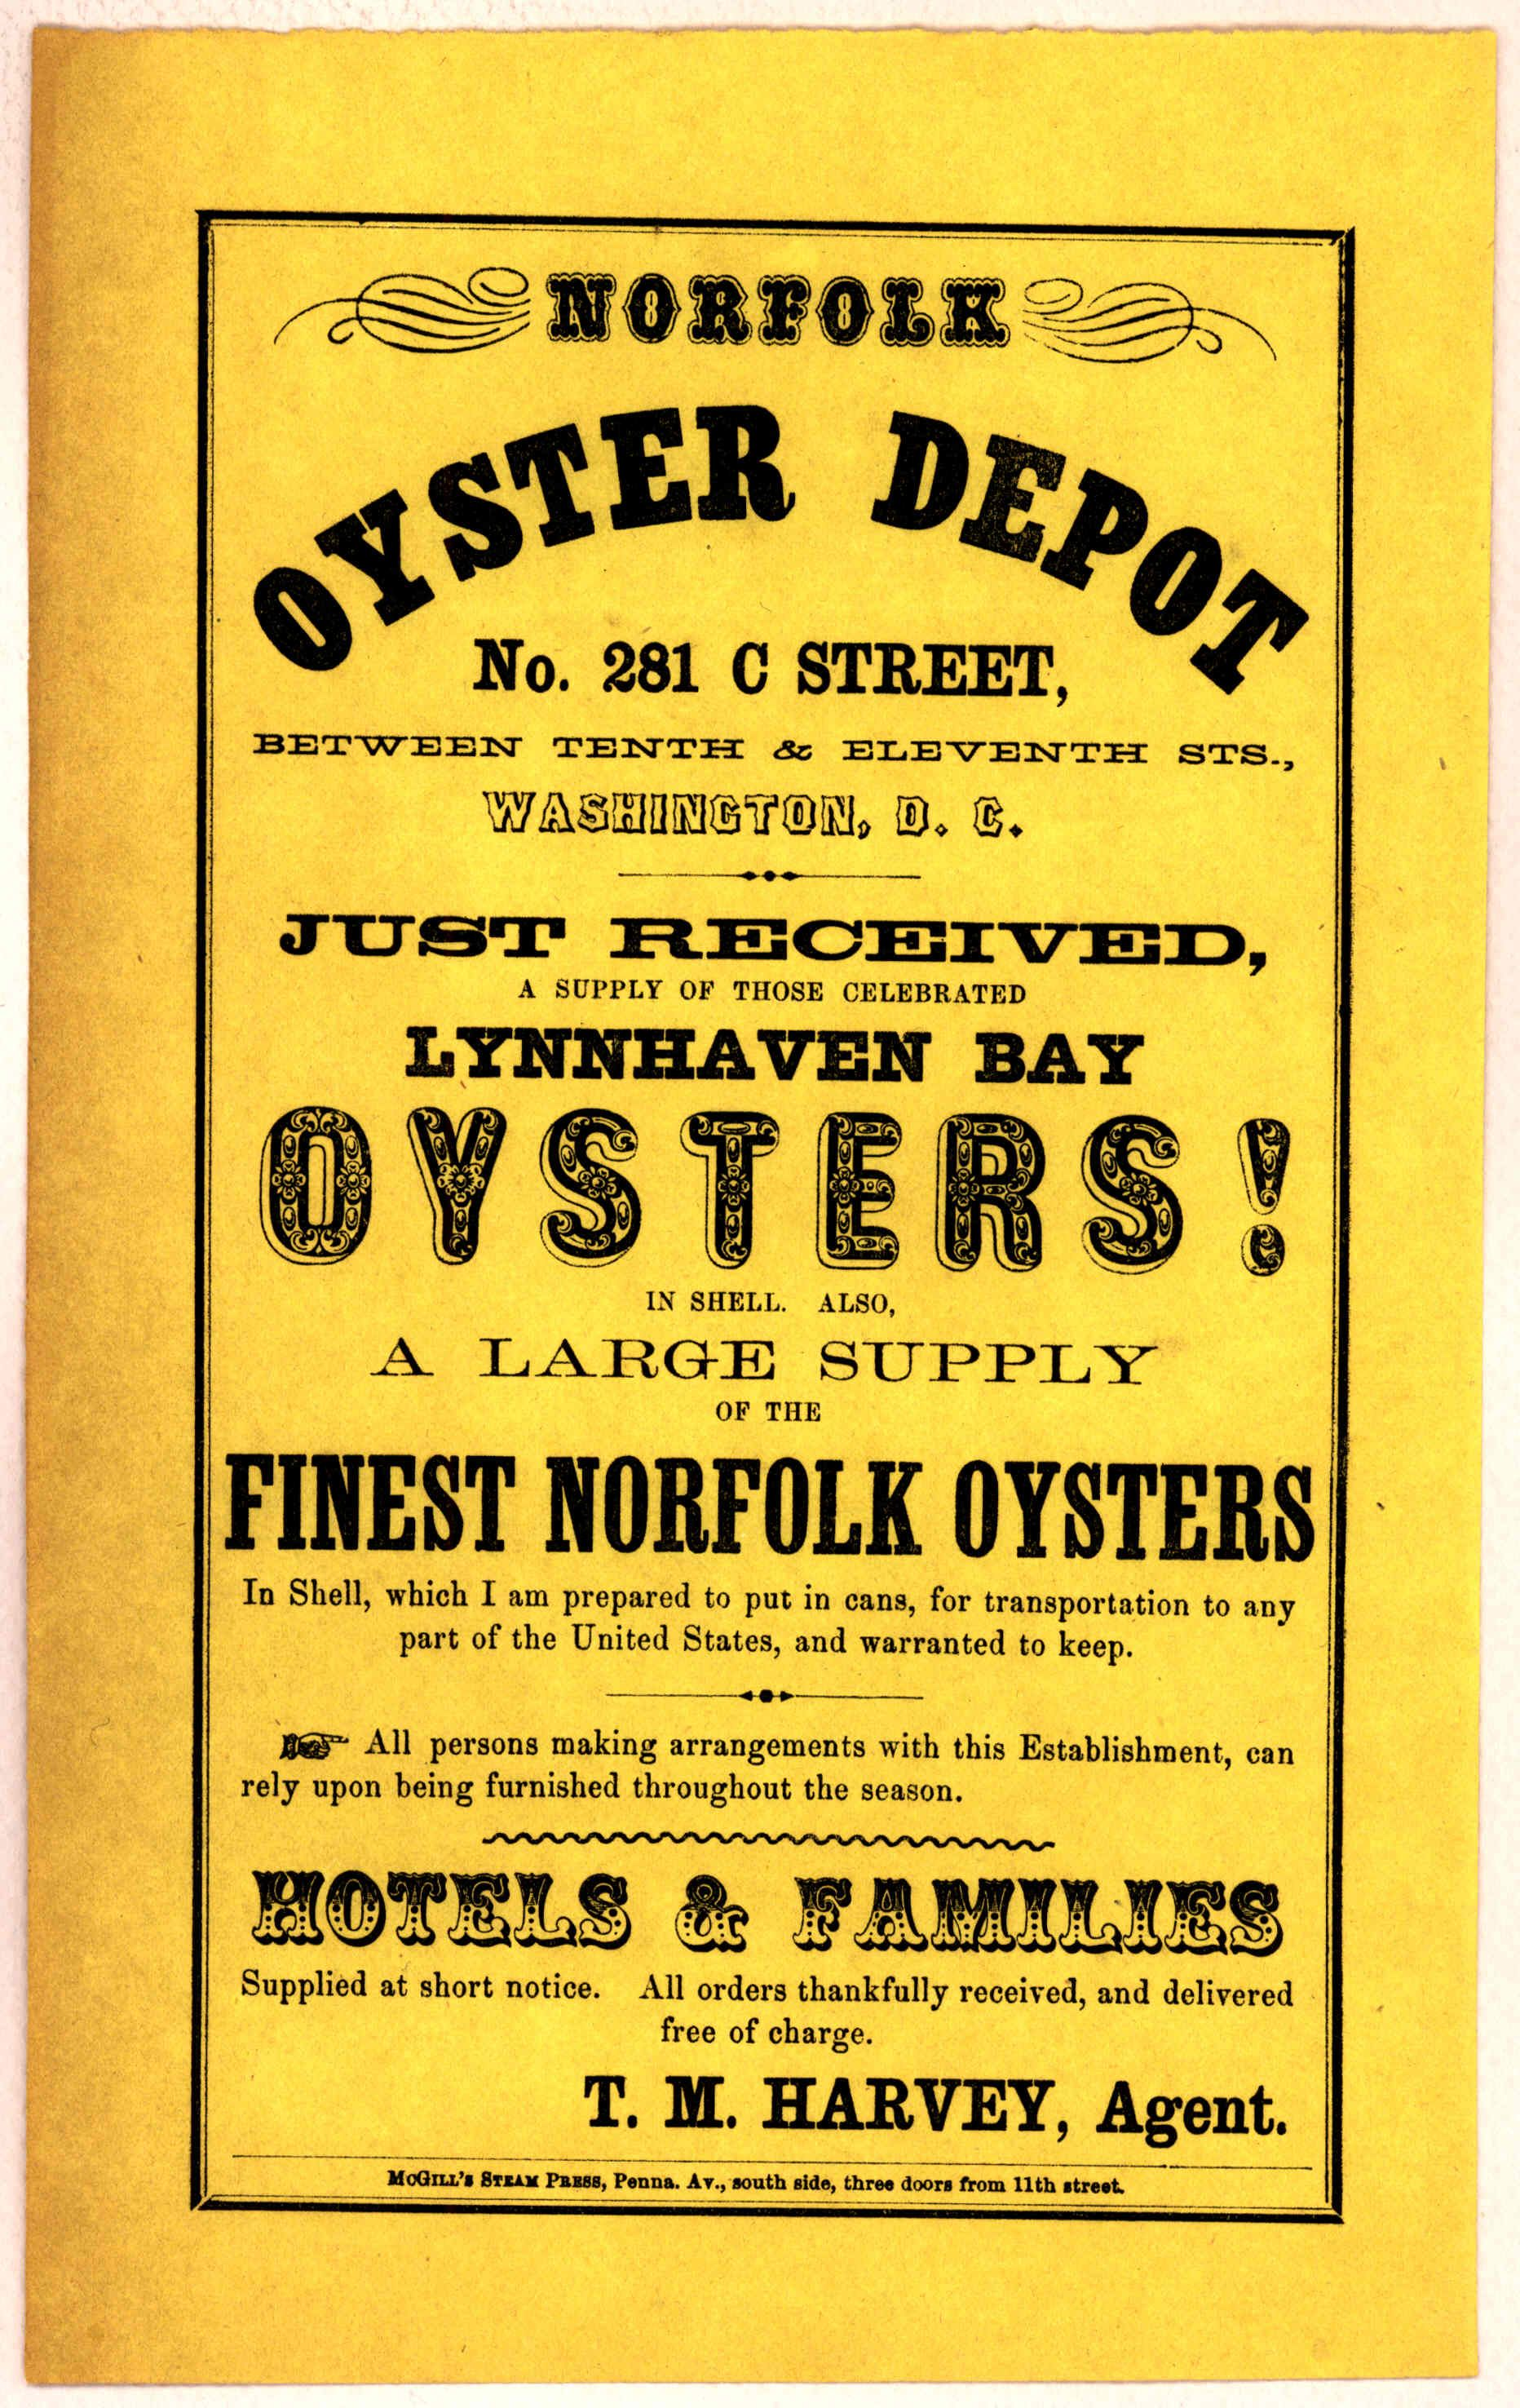 Just received a supply of those celebrated oysters ... [Washington, D. C.] McGill's steam press. [n. d.]